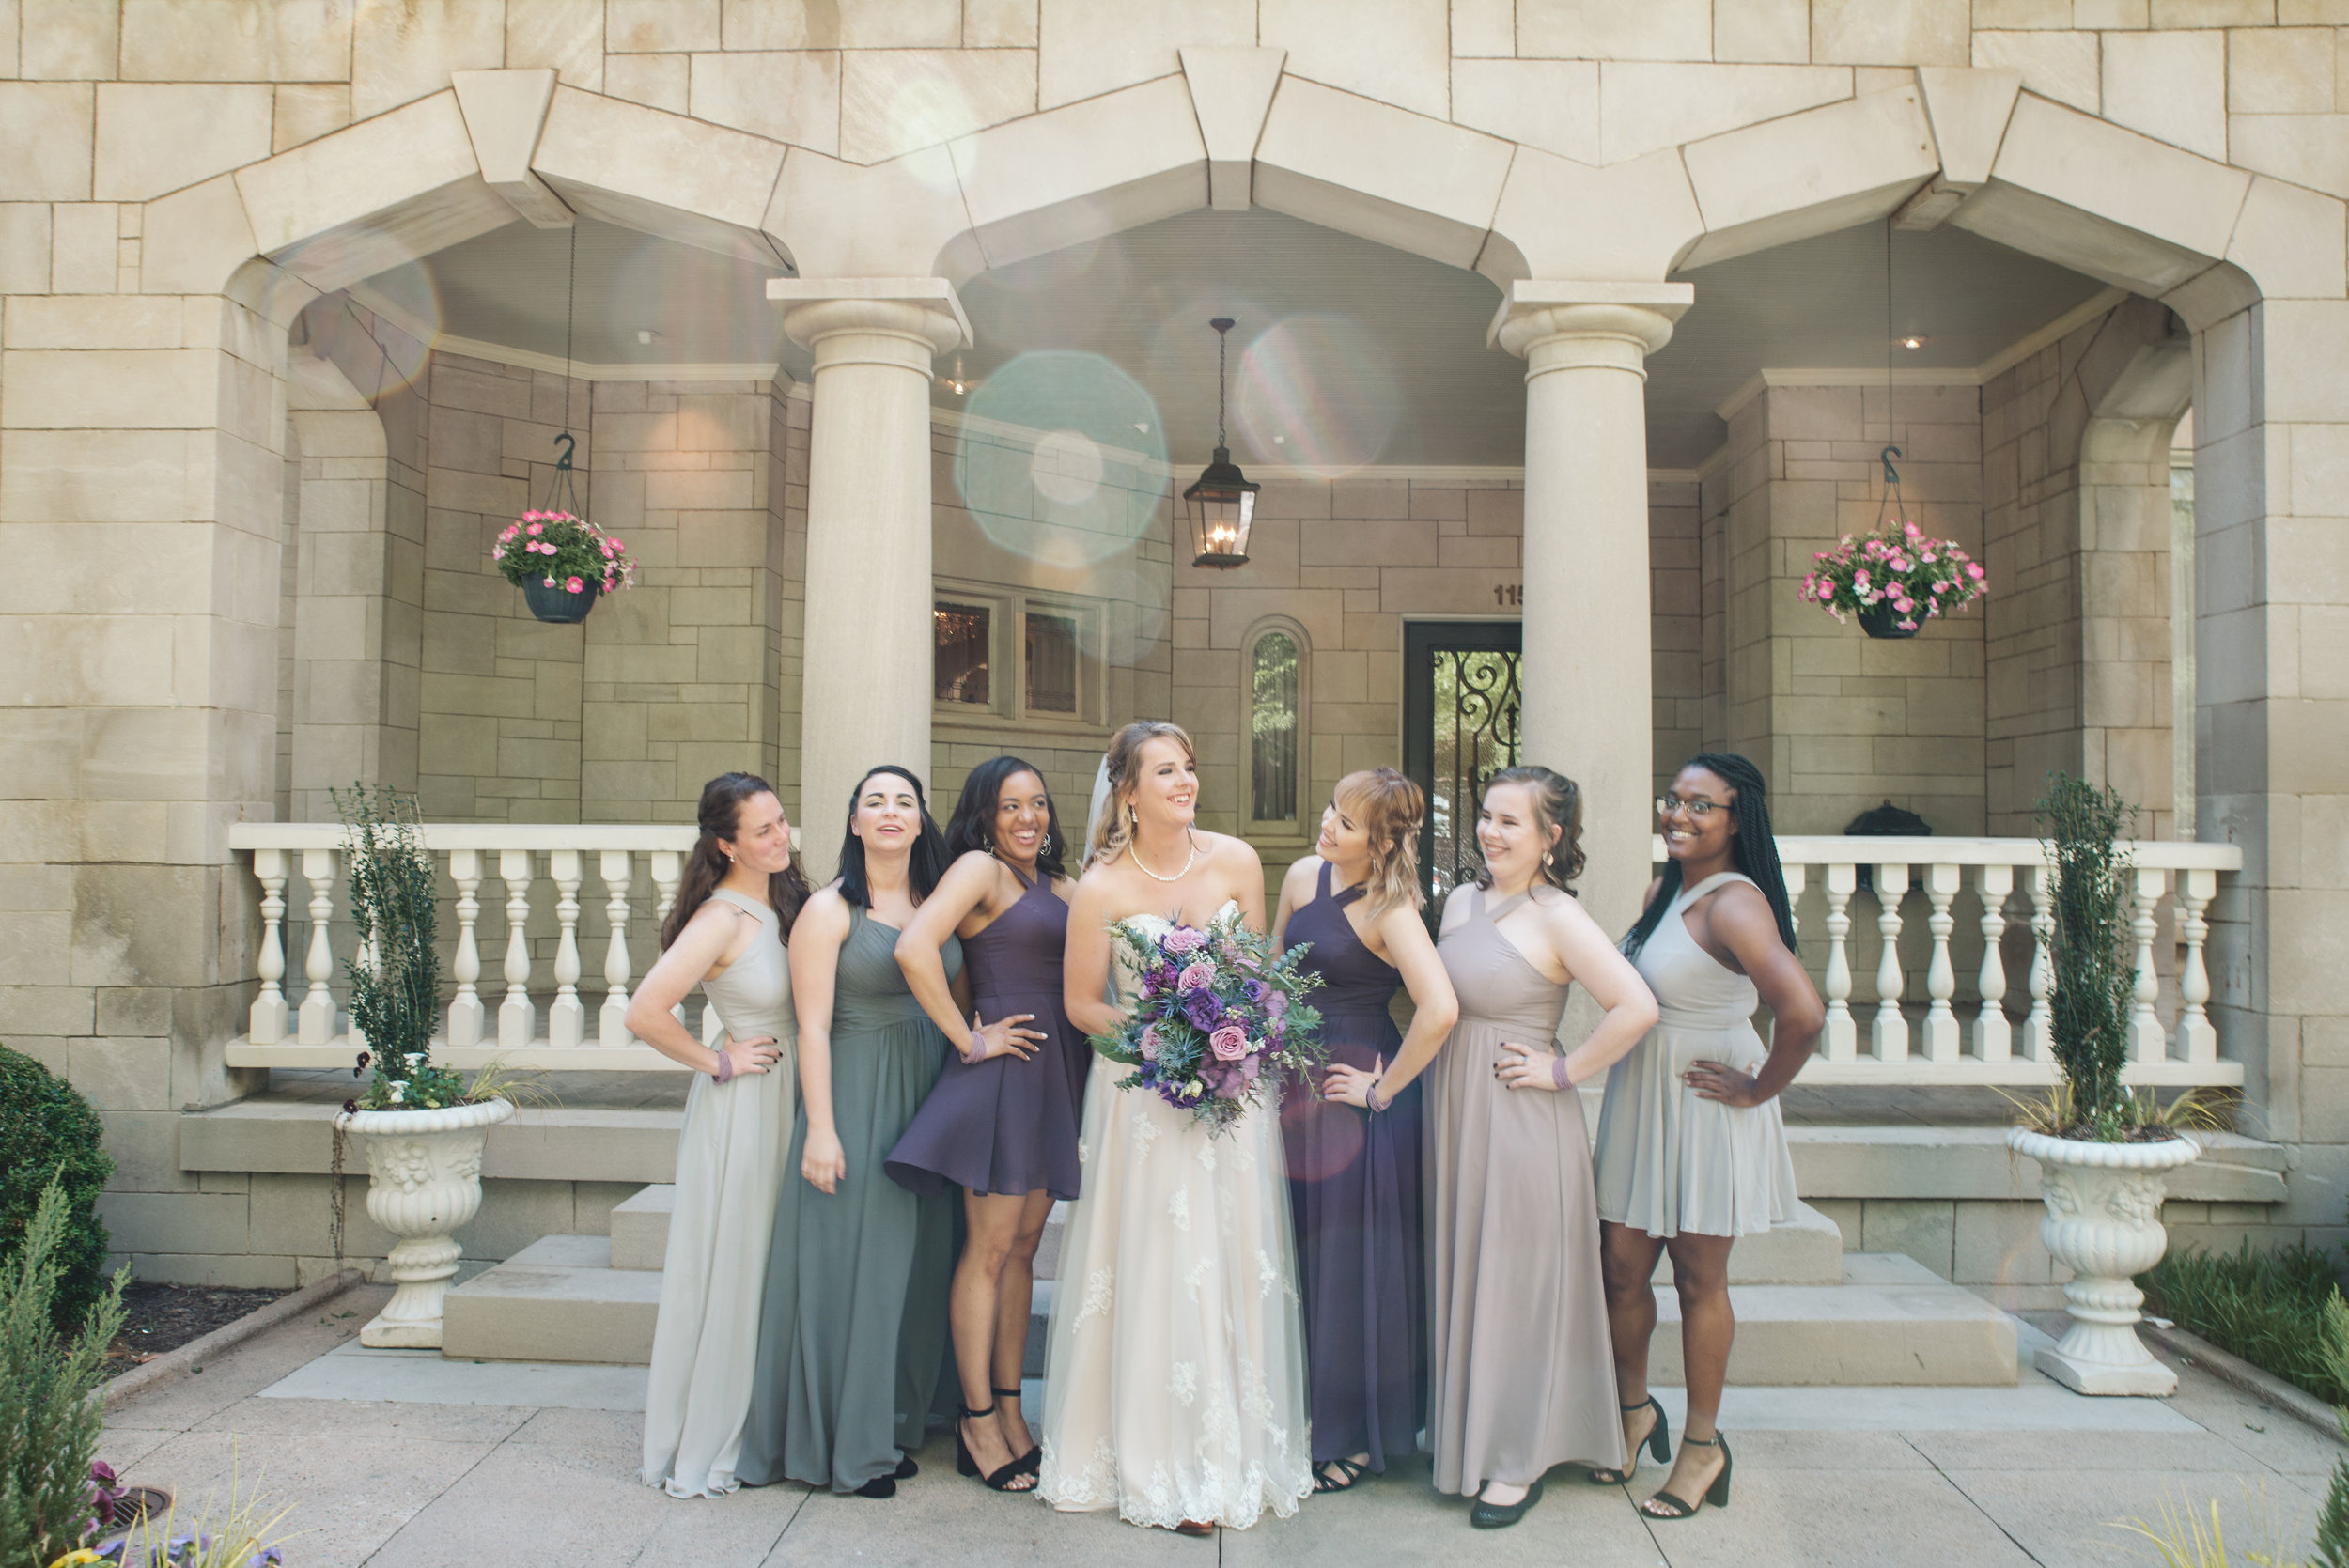 Bride and bridesmaids strike a pose in front of the Wimbish House, Atlanta's premier wedding and event venue.